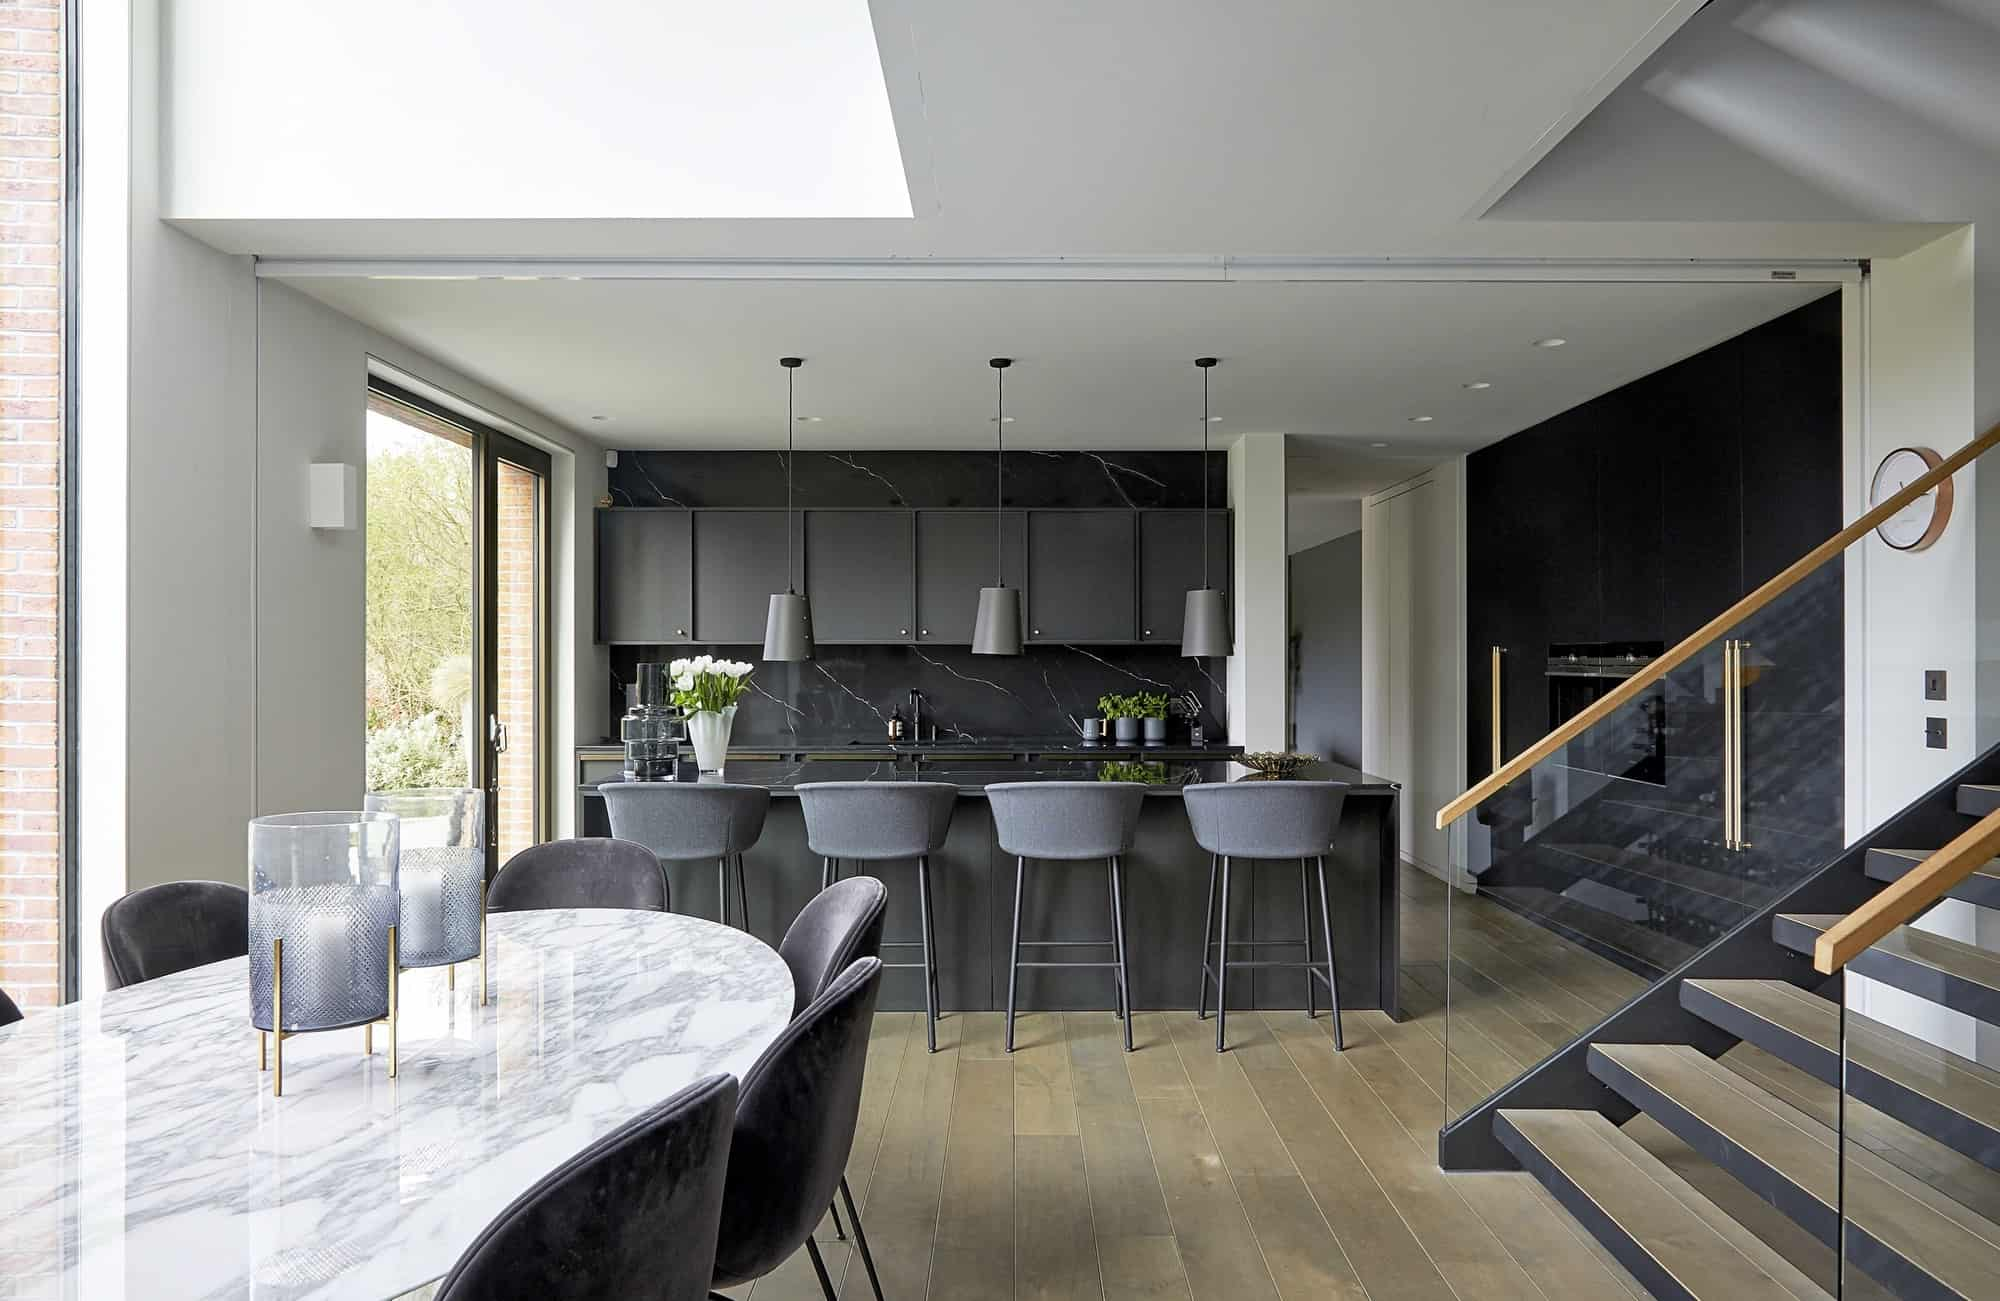 Oak Hill BR7 - A contemporary, architect designed property with a multi-level layout and double height windows - The Location Guys